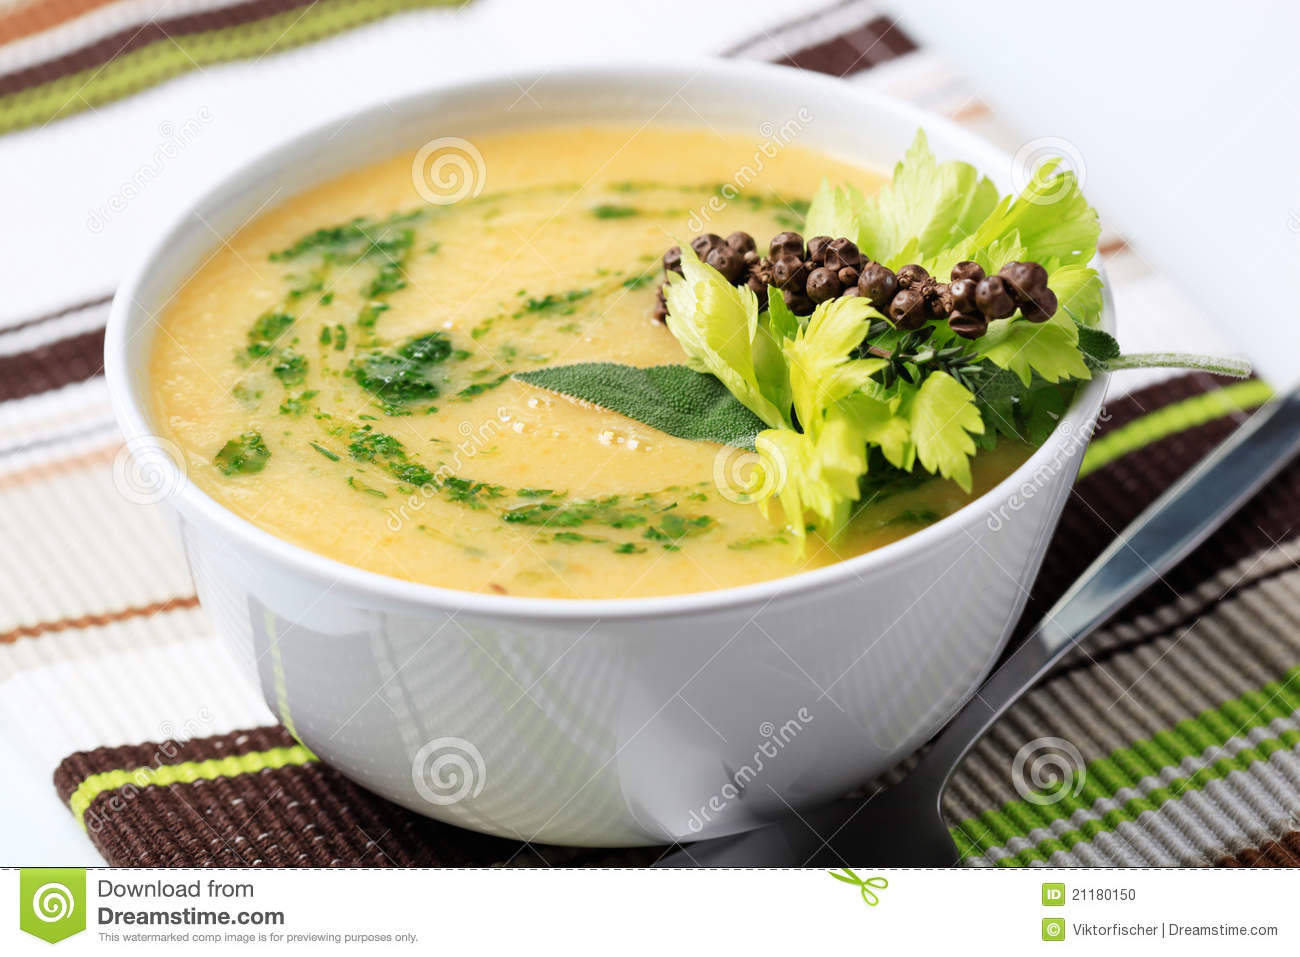 Thick Vegetable Soup Stock Photo - Image: 21180150